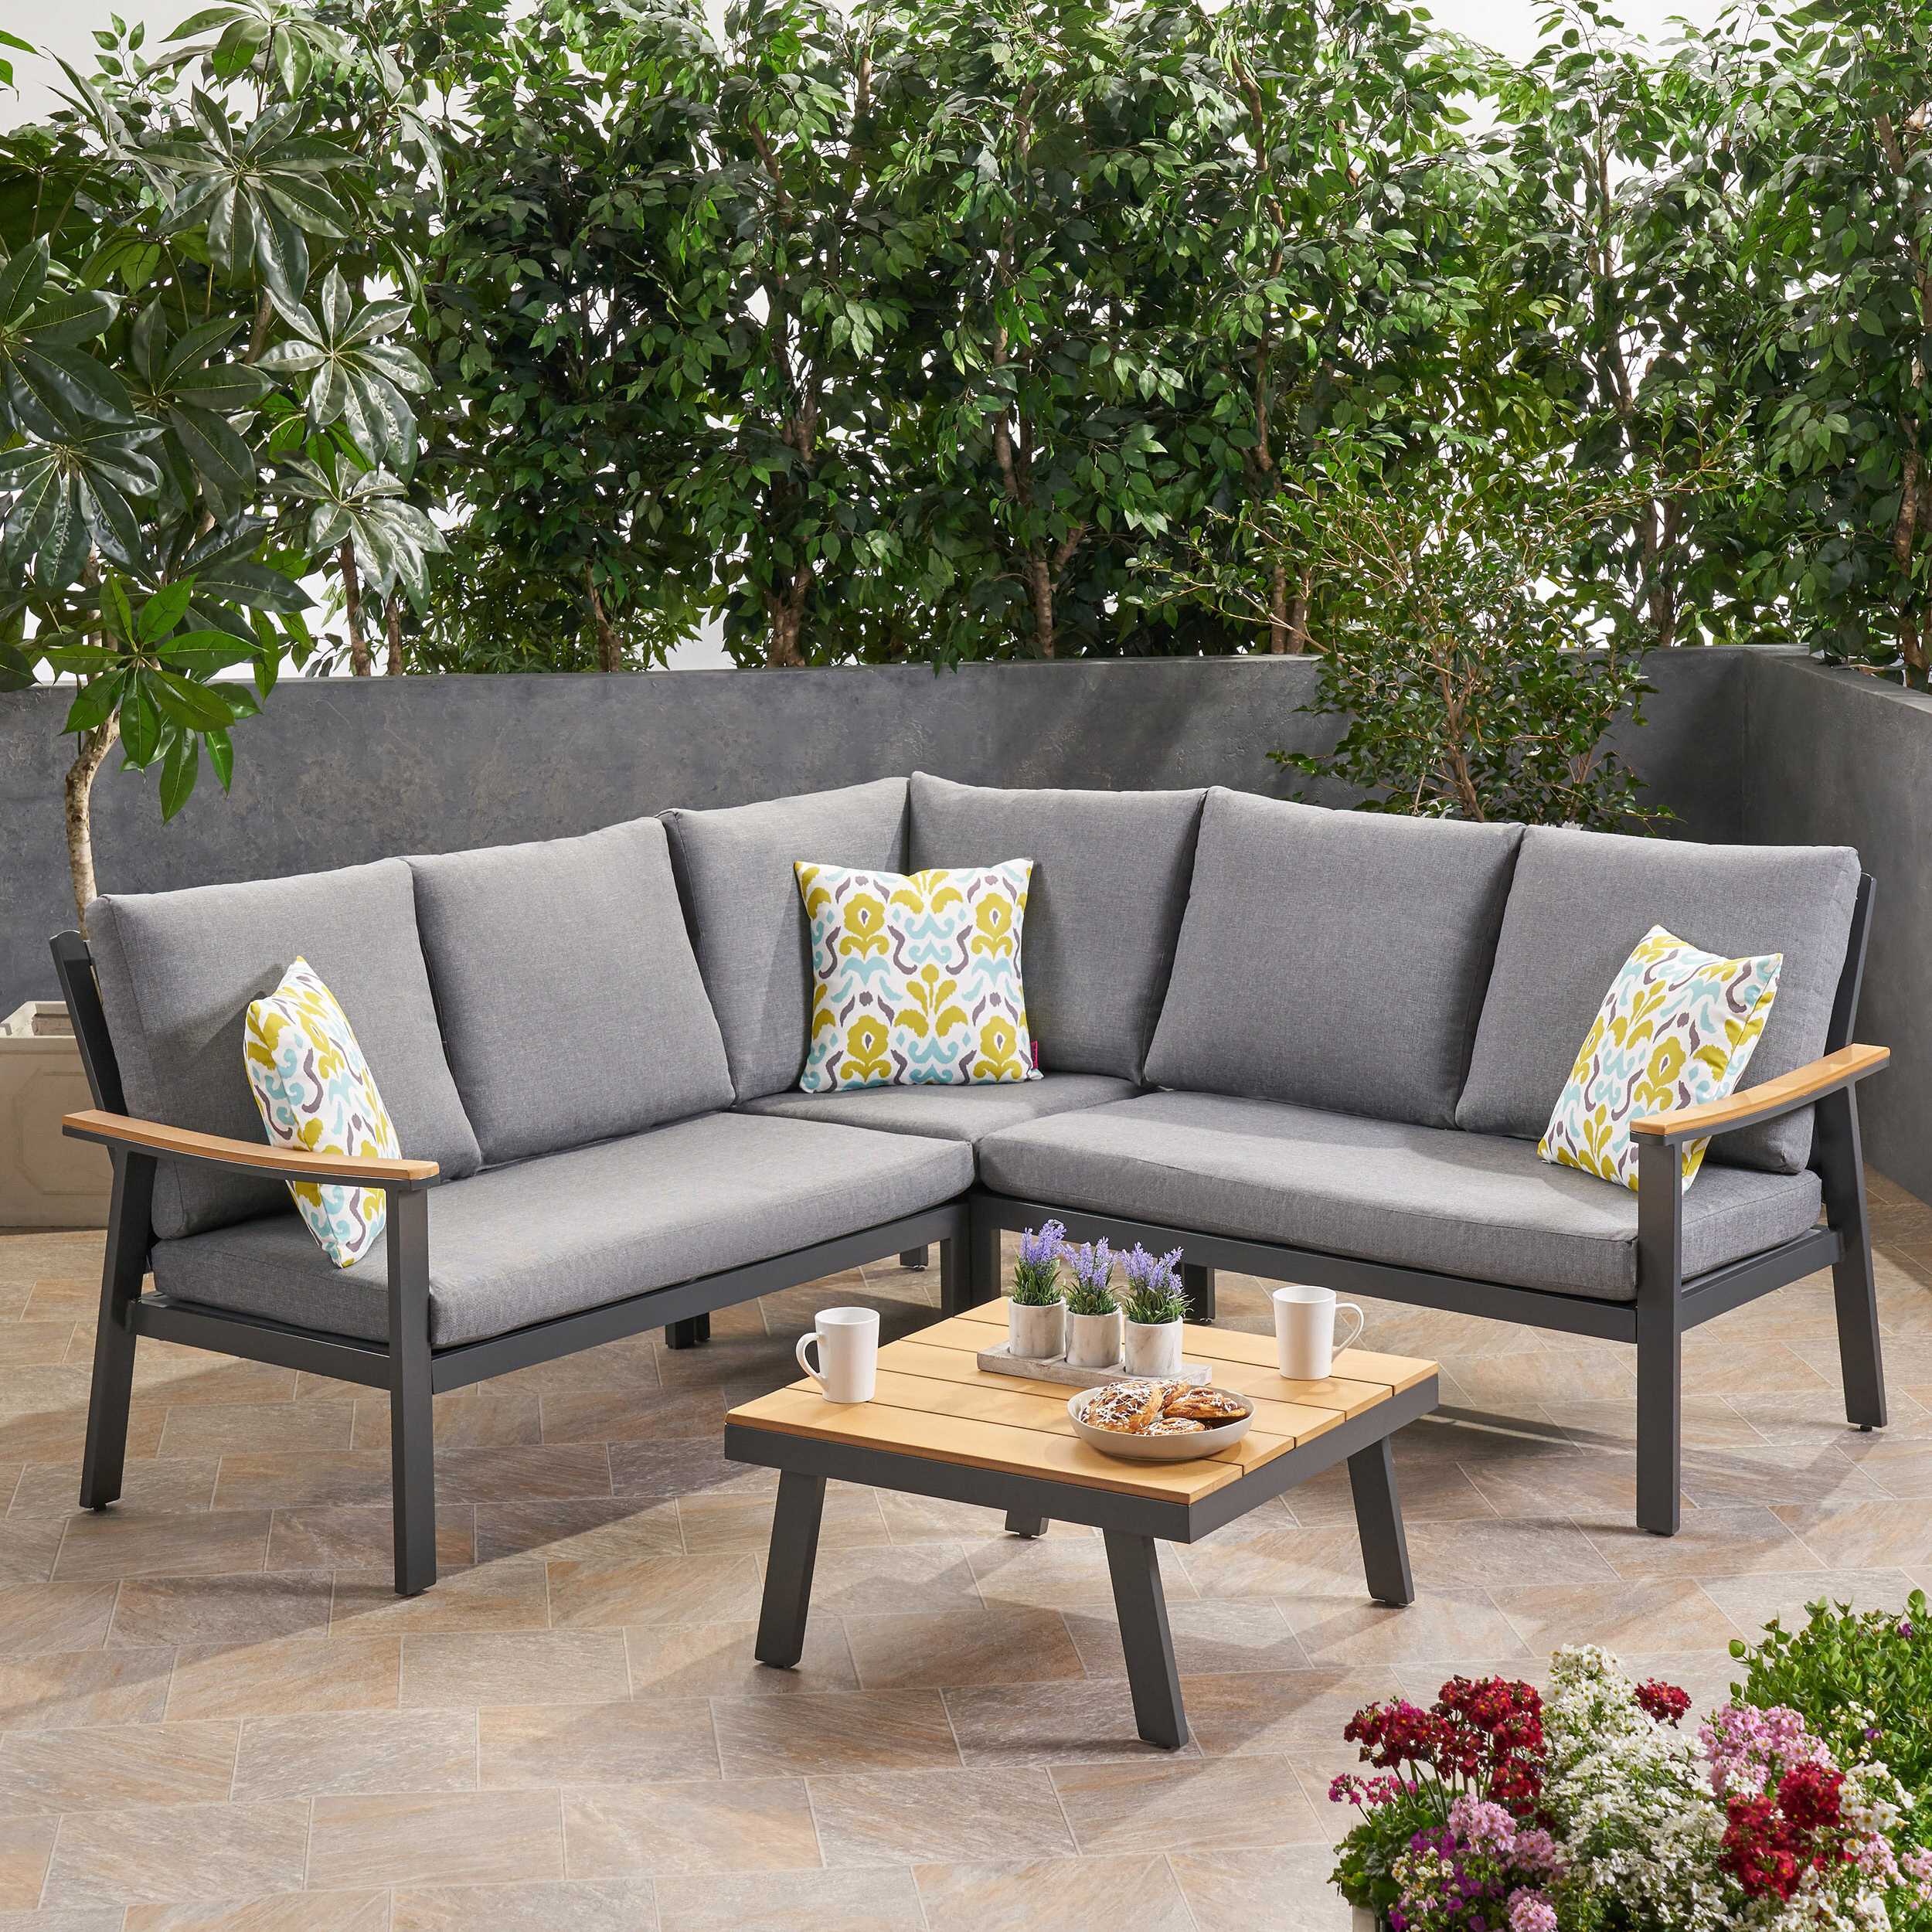 Carina 4 Piece Sectionals Seating Group With Cushions Inside Popular Ivy Bronx Arocho Outdoor 4 Piece Sectional Seating Group (View 7 of 25)